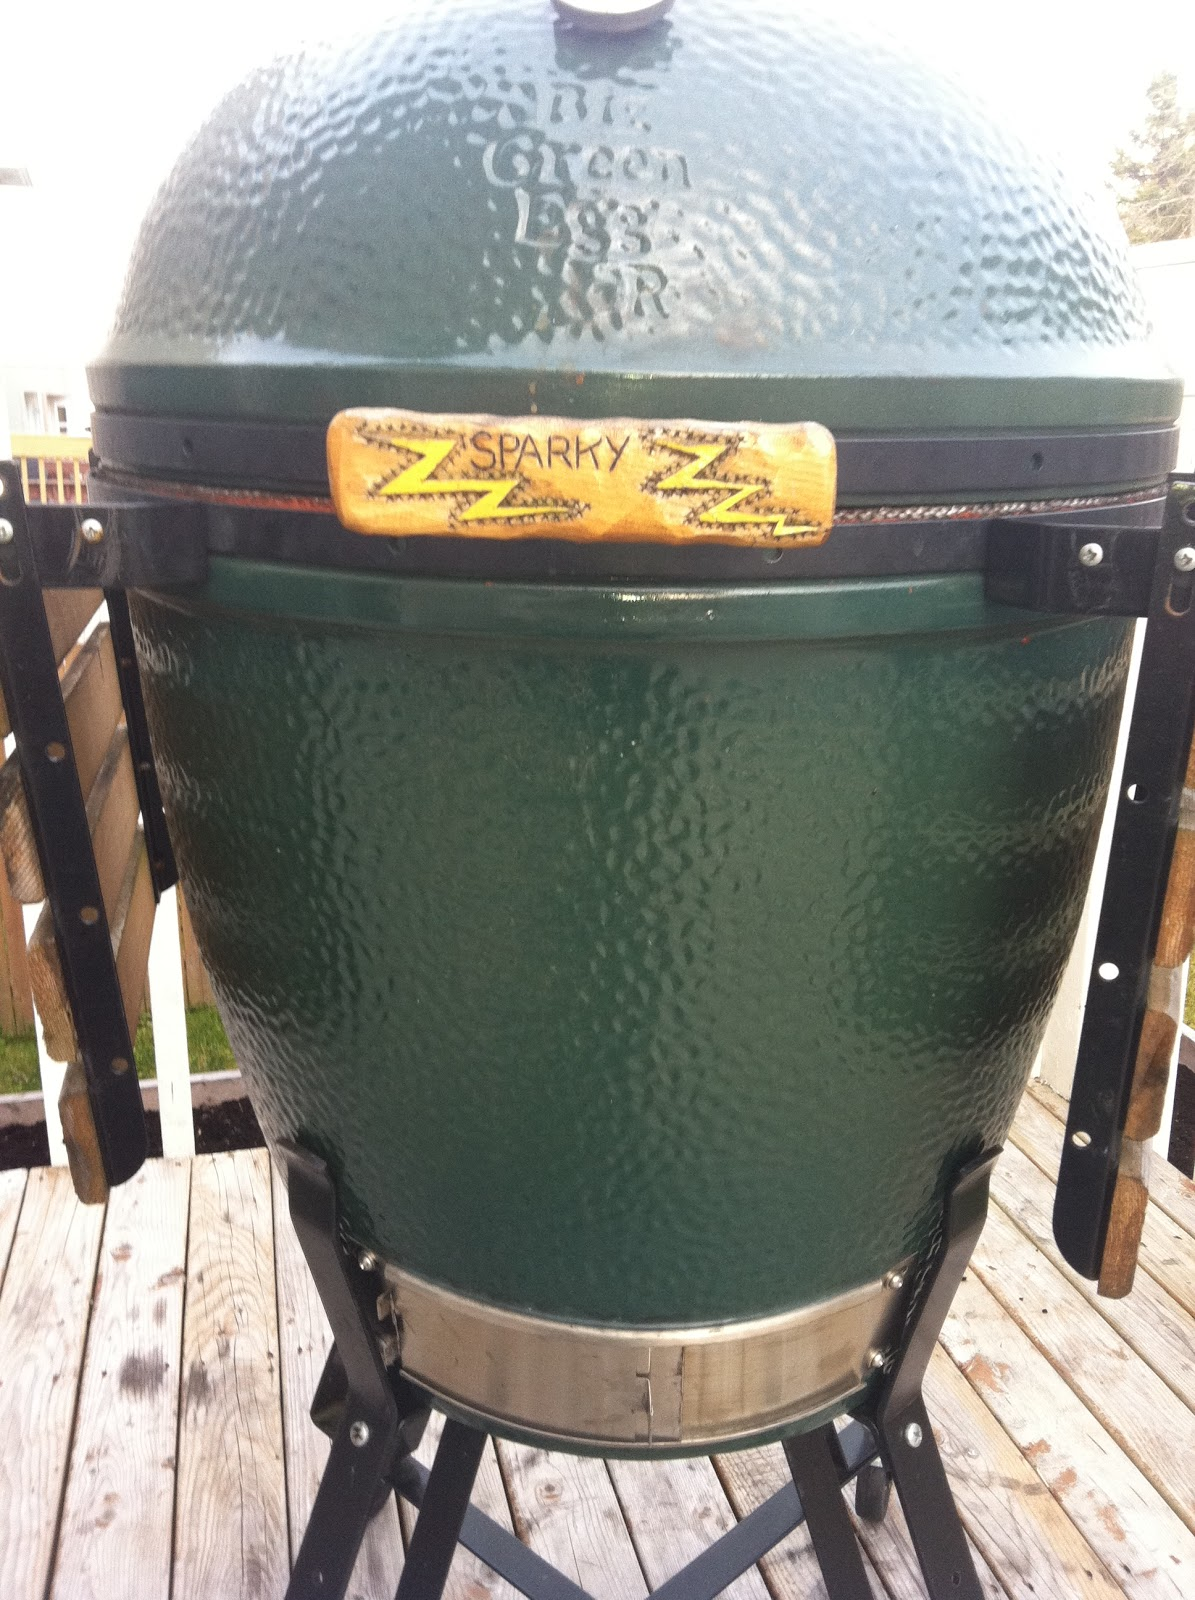 Big Green Egg XL Charcoal Grill Review | BBQ & Grilling